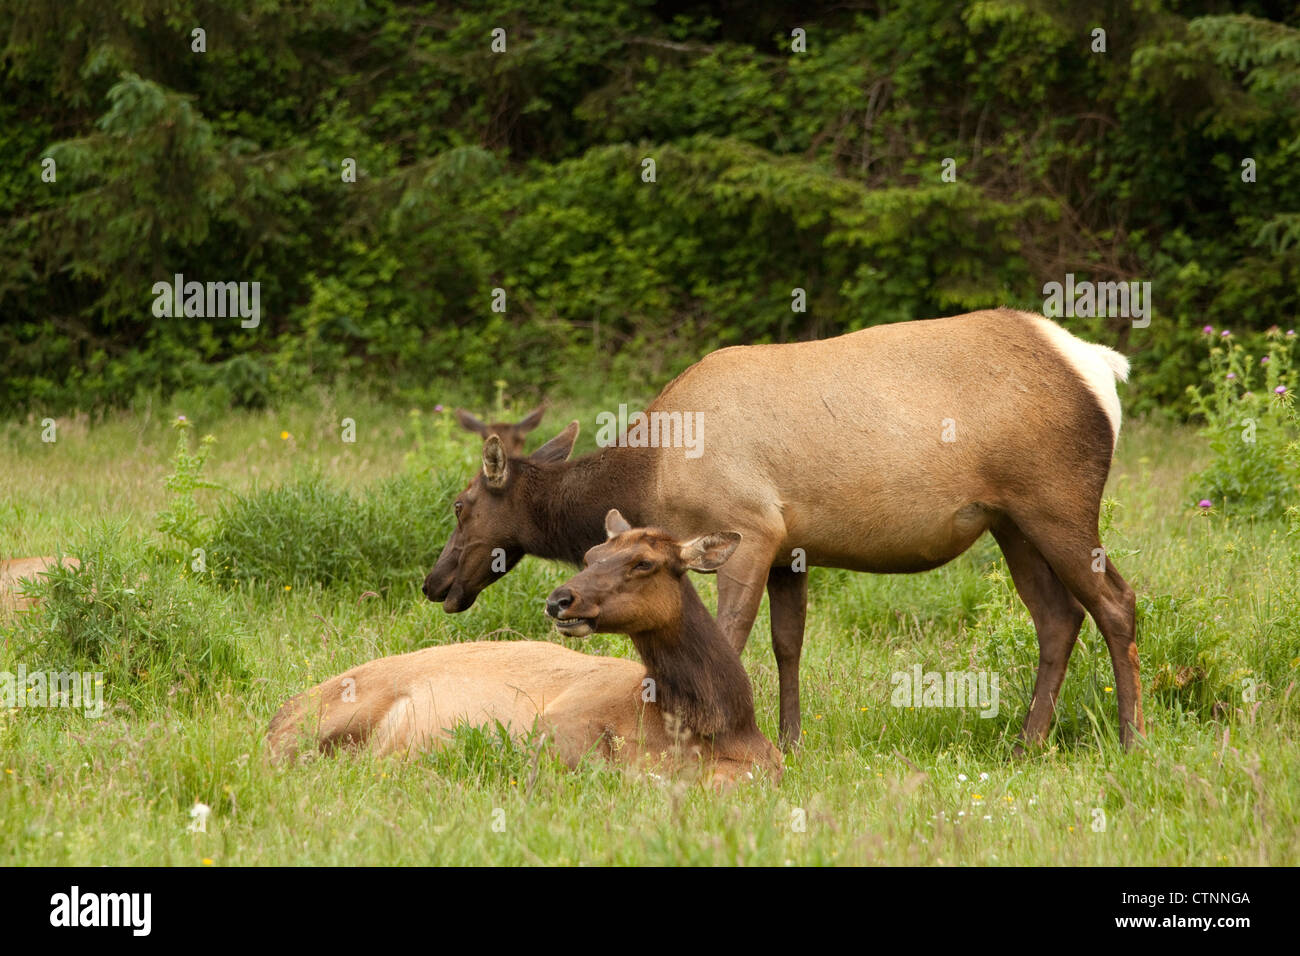 Roosevelt elk resting in a meadow in northern California, USA LATIN NAME Cervus canadensis roosevelti COMMON NAME - Stock Image